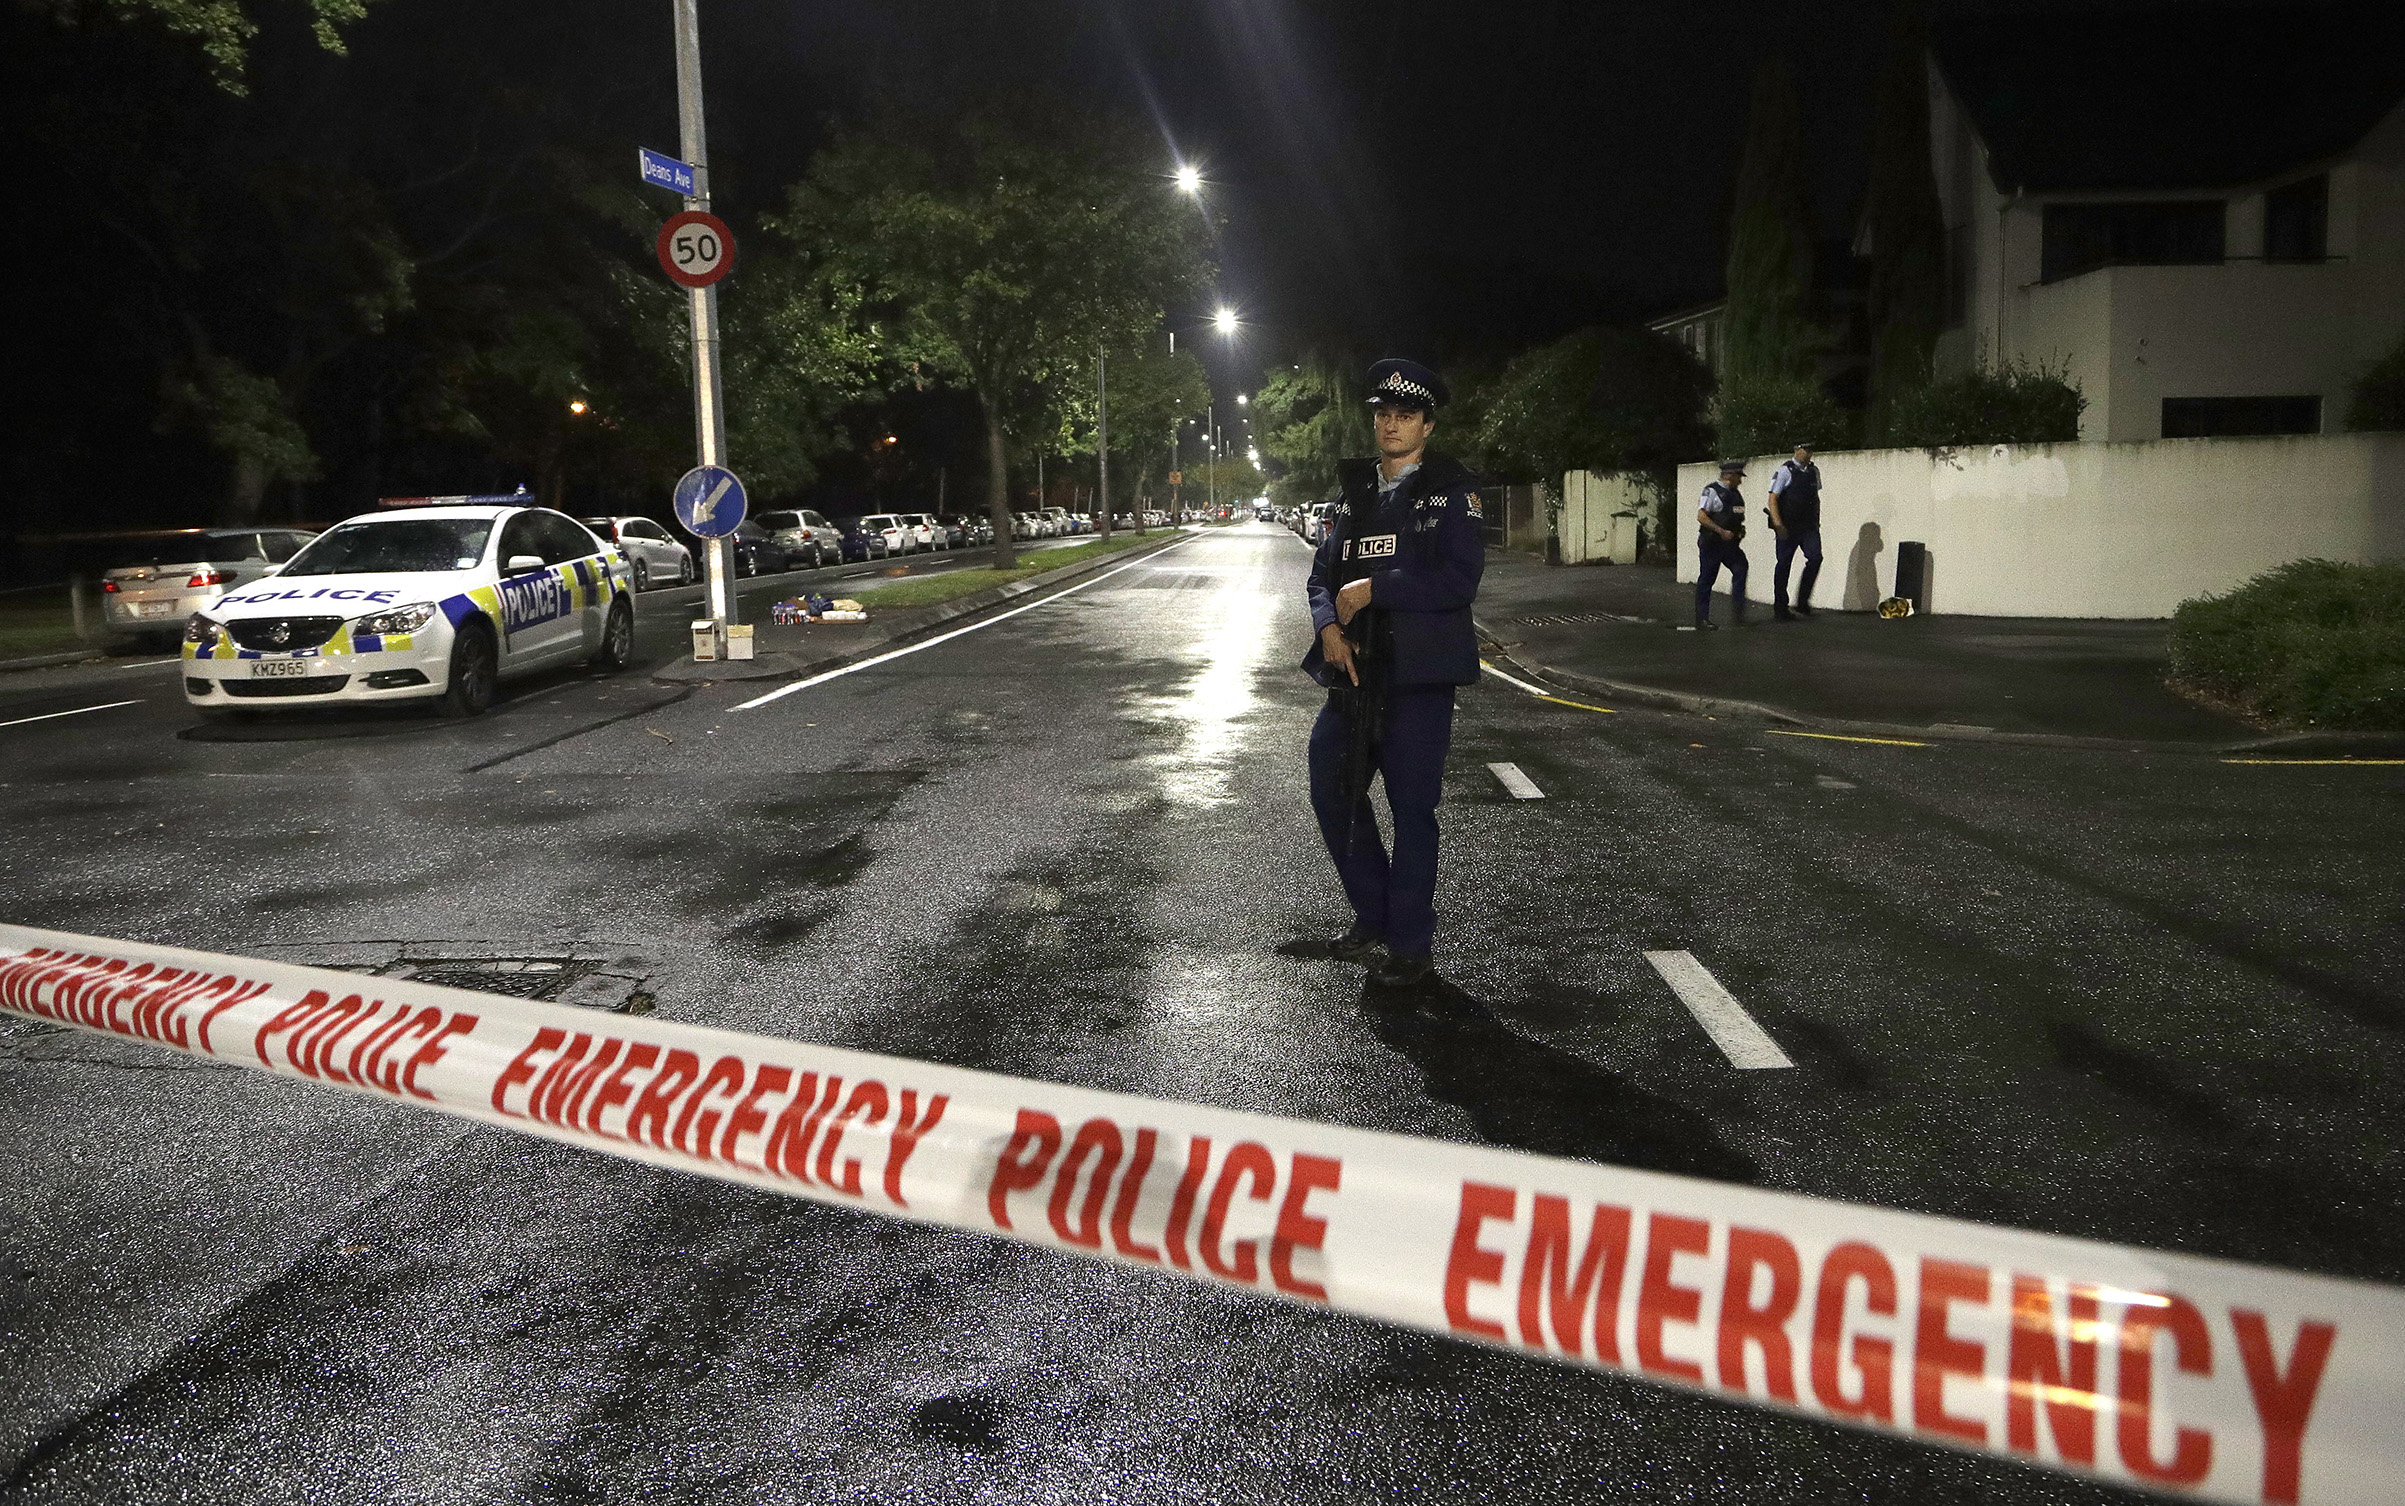 A police officer patrols at a cordon near a mosque where multiple people were killed in a mass shooting in central Christchurch, New Zealand, on March 15, 2019.